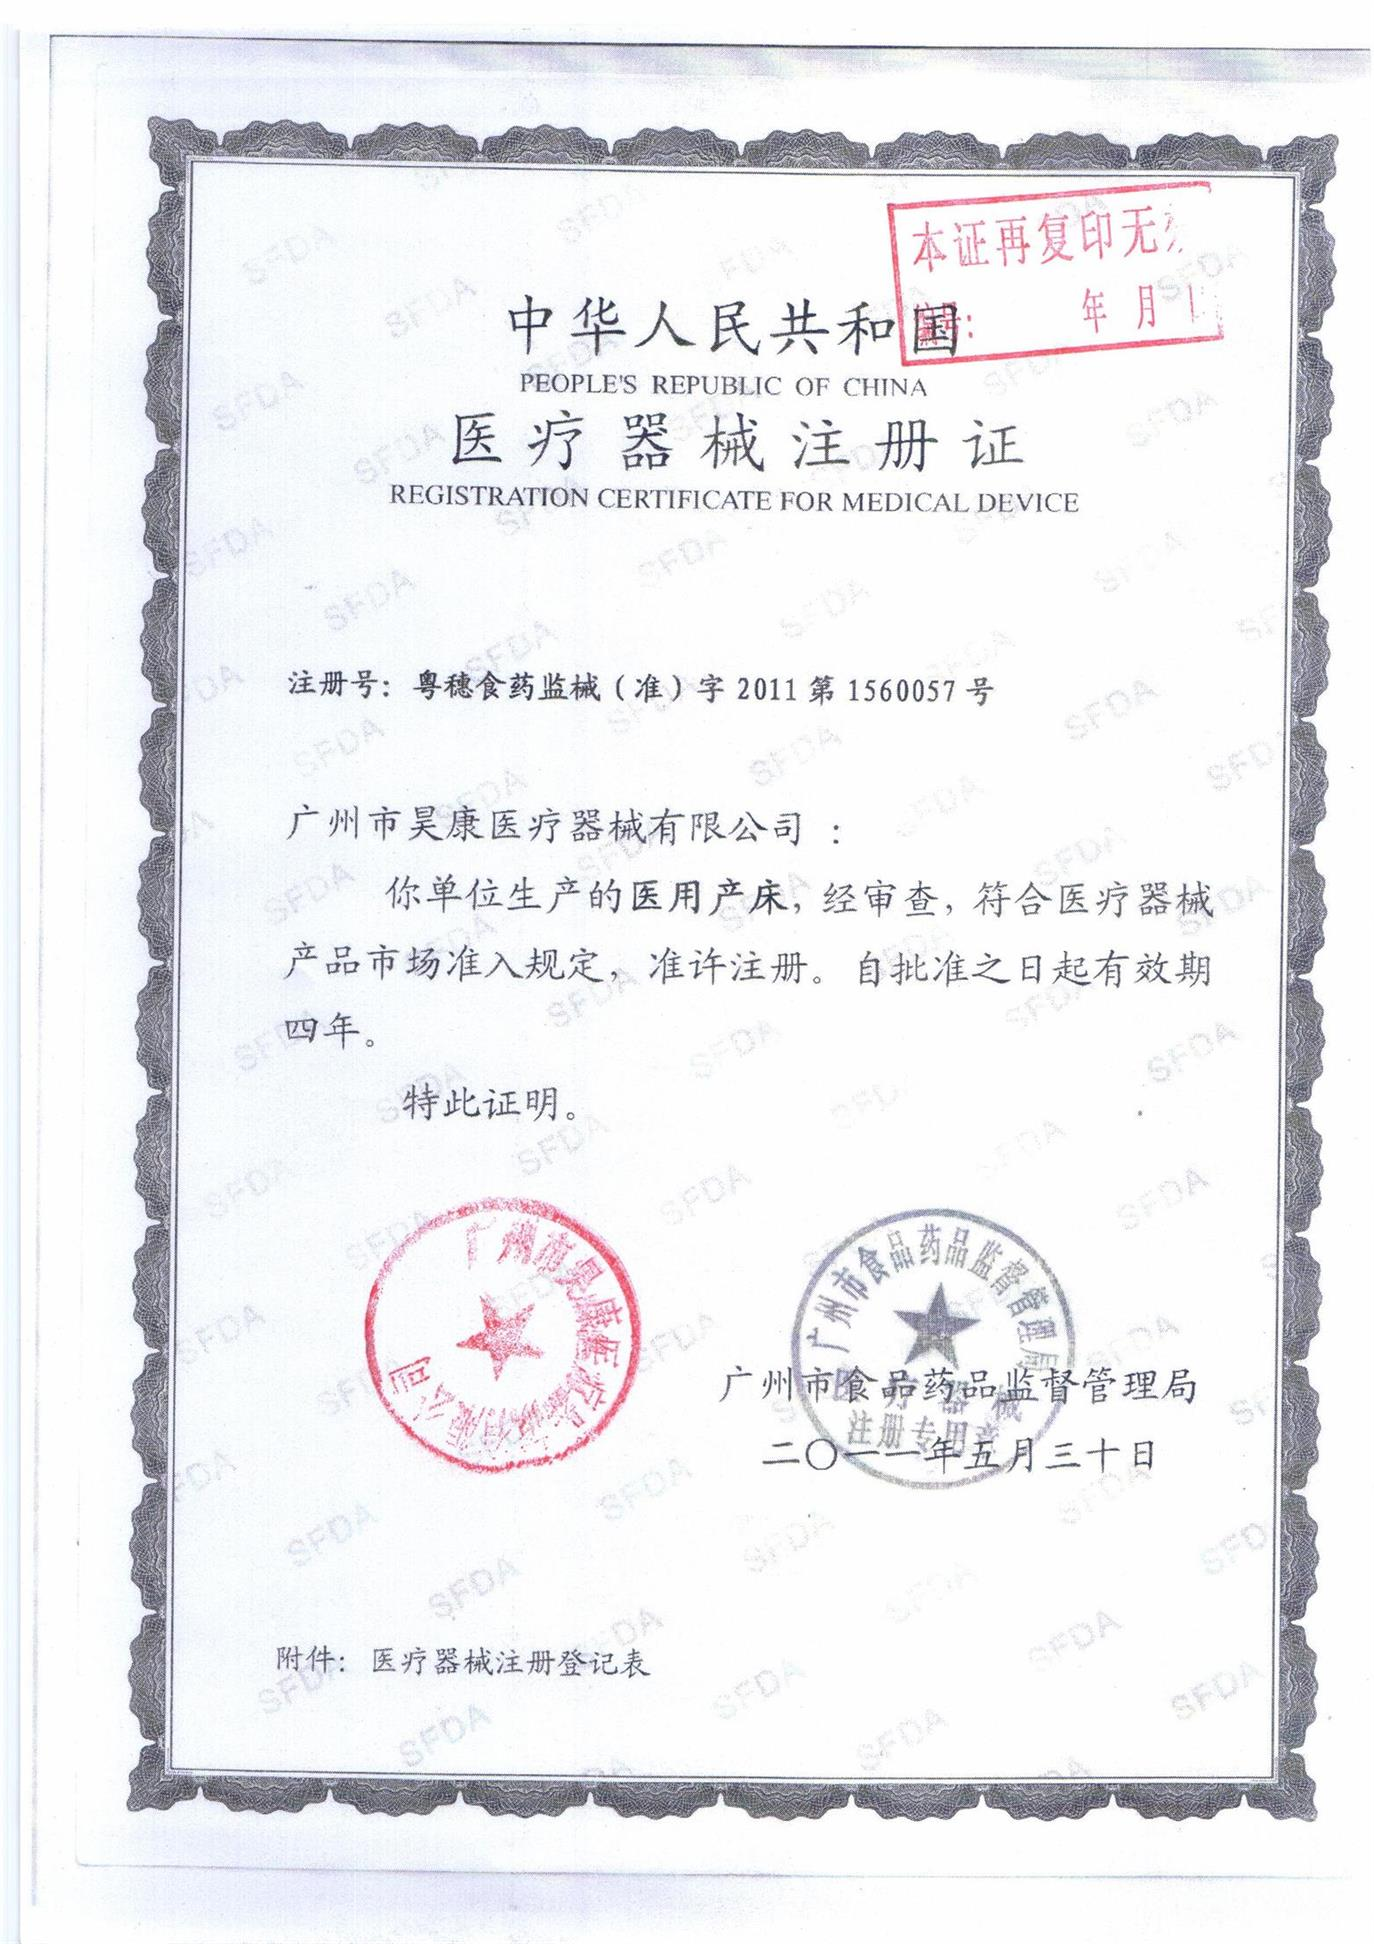 REGISTRATION CERTIFICATE FOR OBSTETRIC TABLE